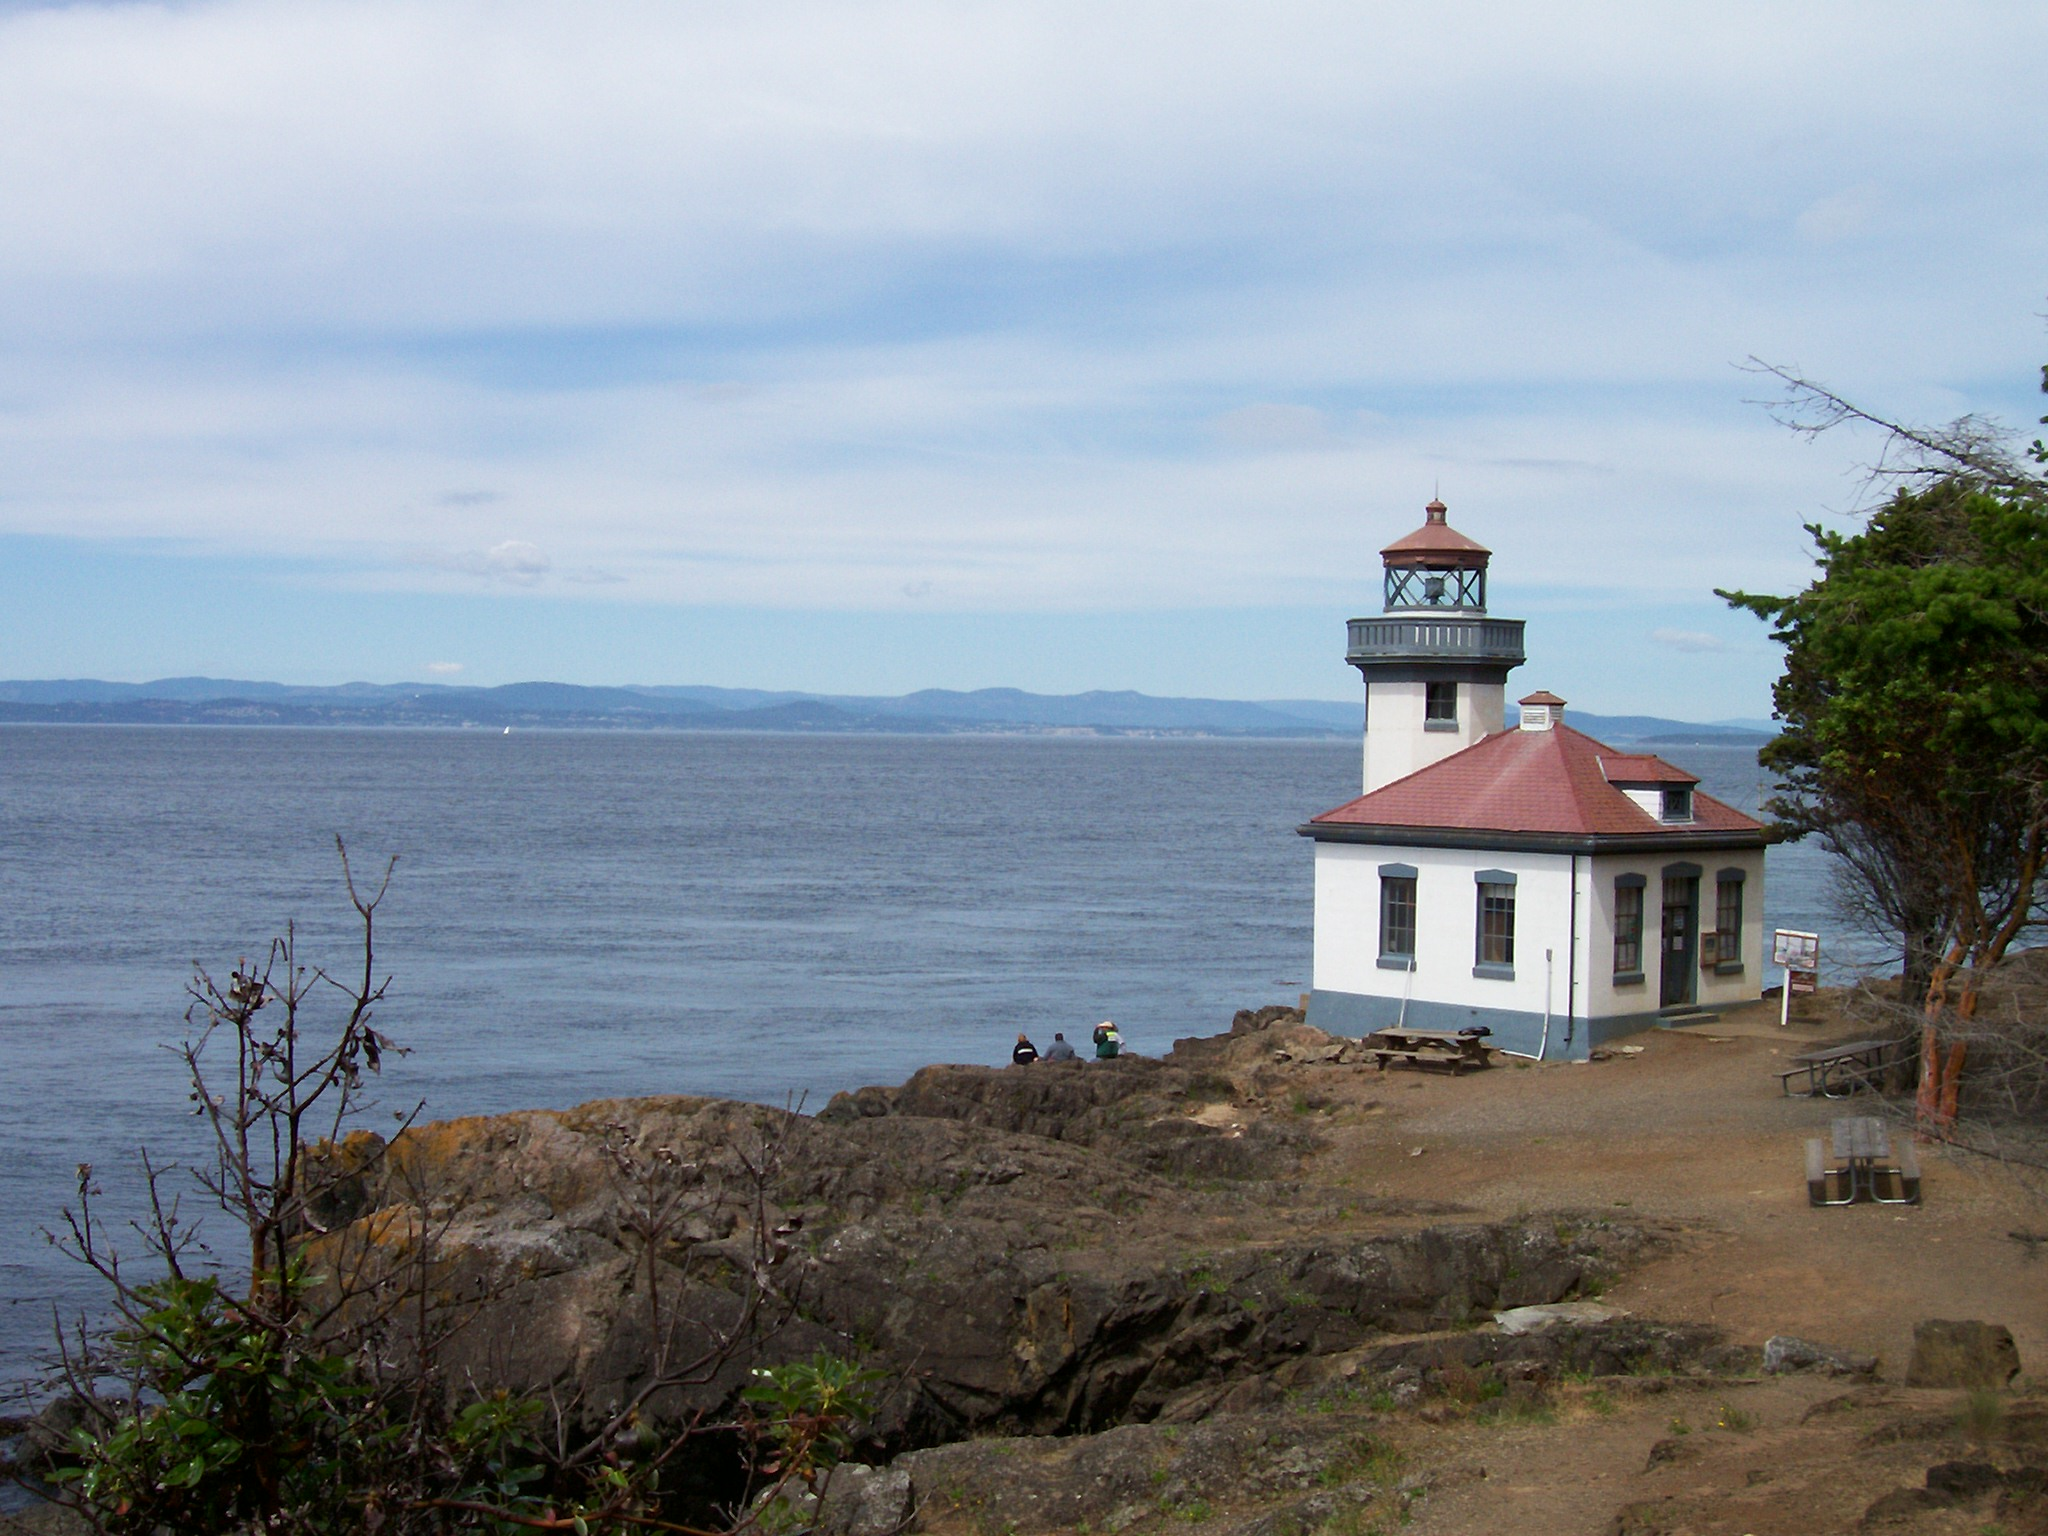 One of the lighthouses at the whale park